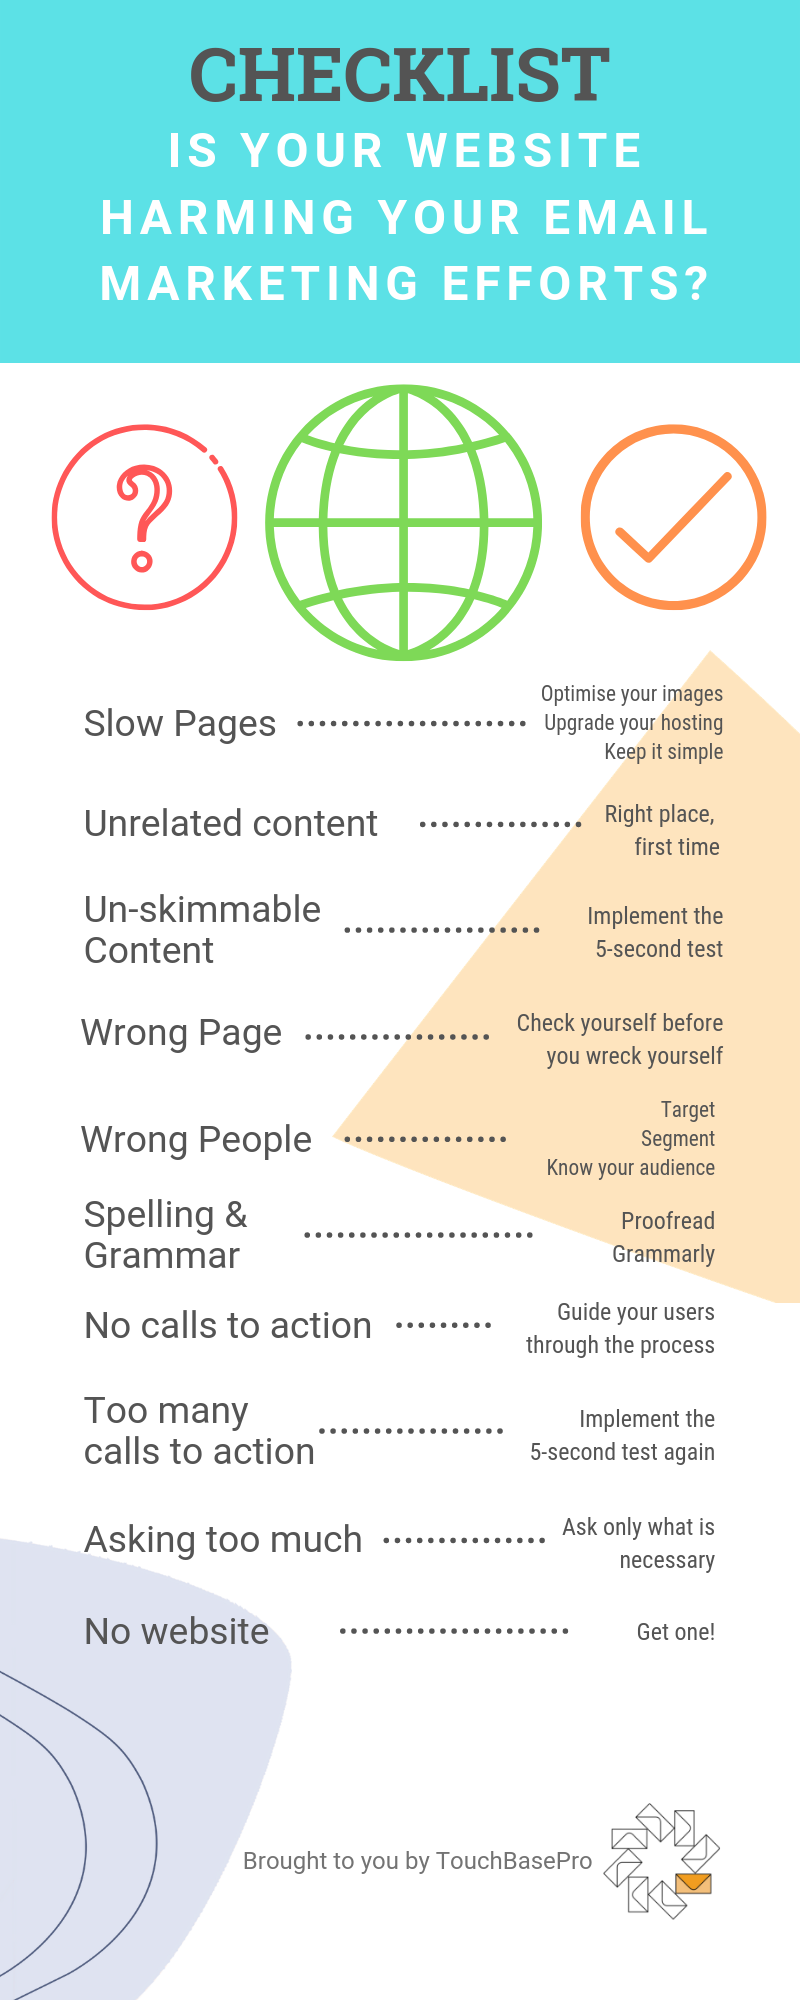 Is your website harming your email marketing? An Infographic